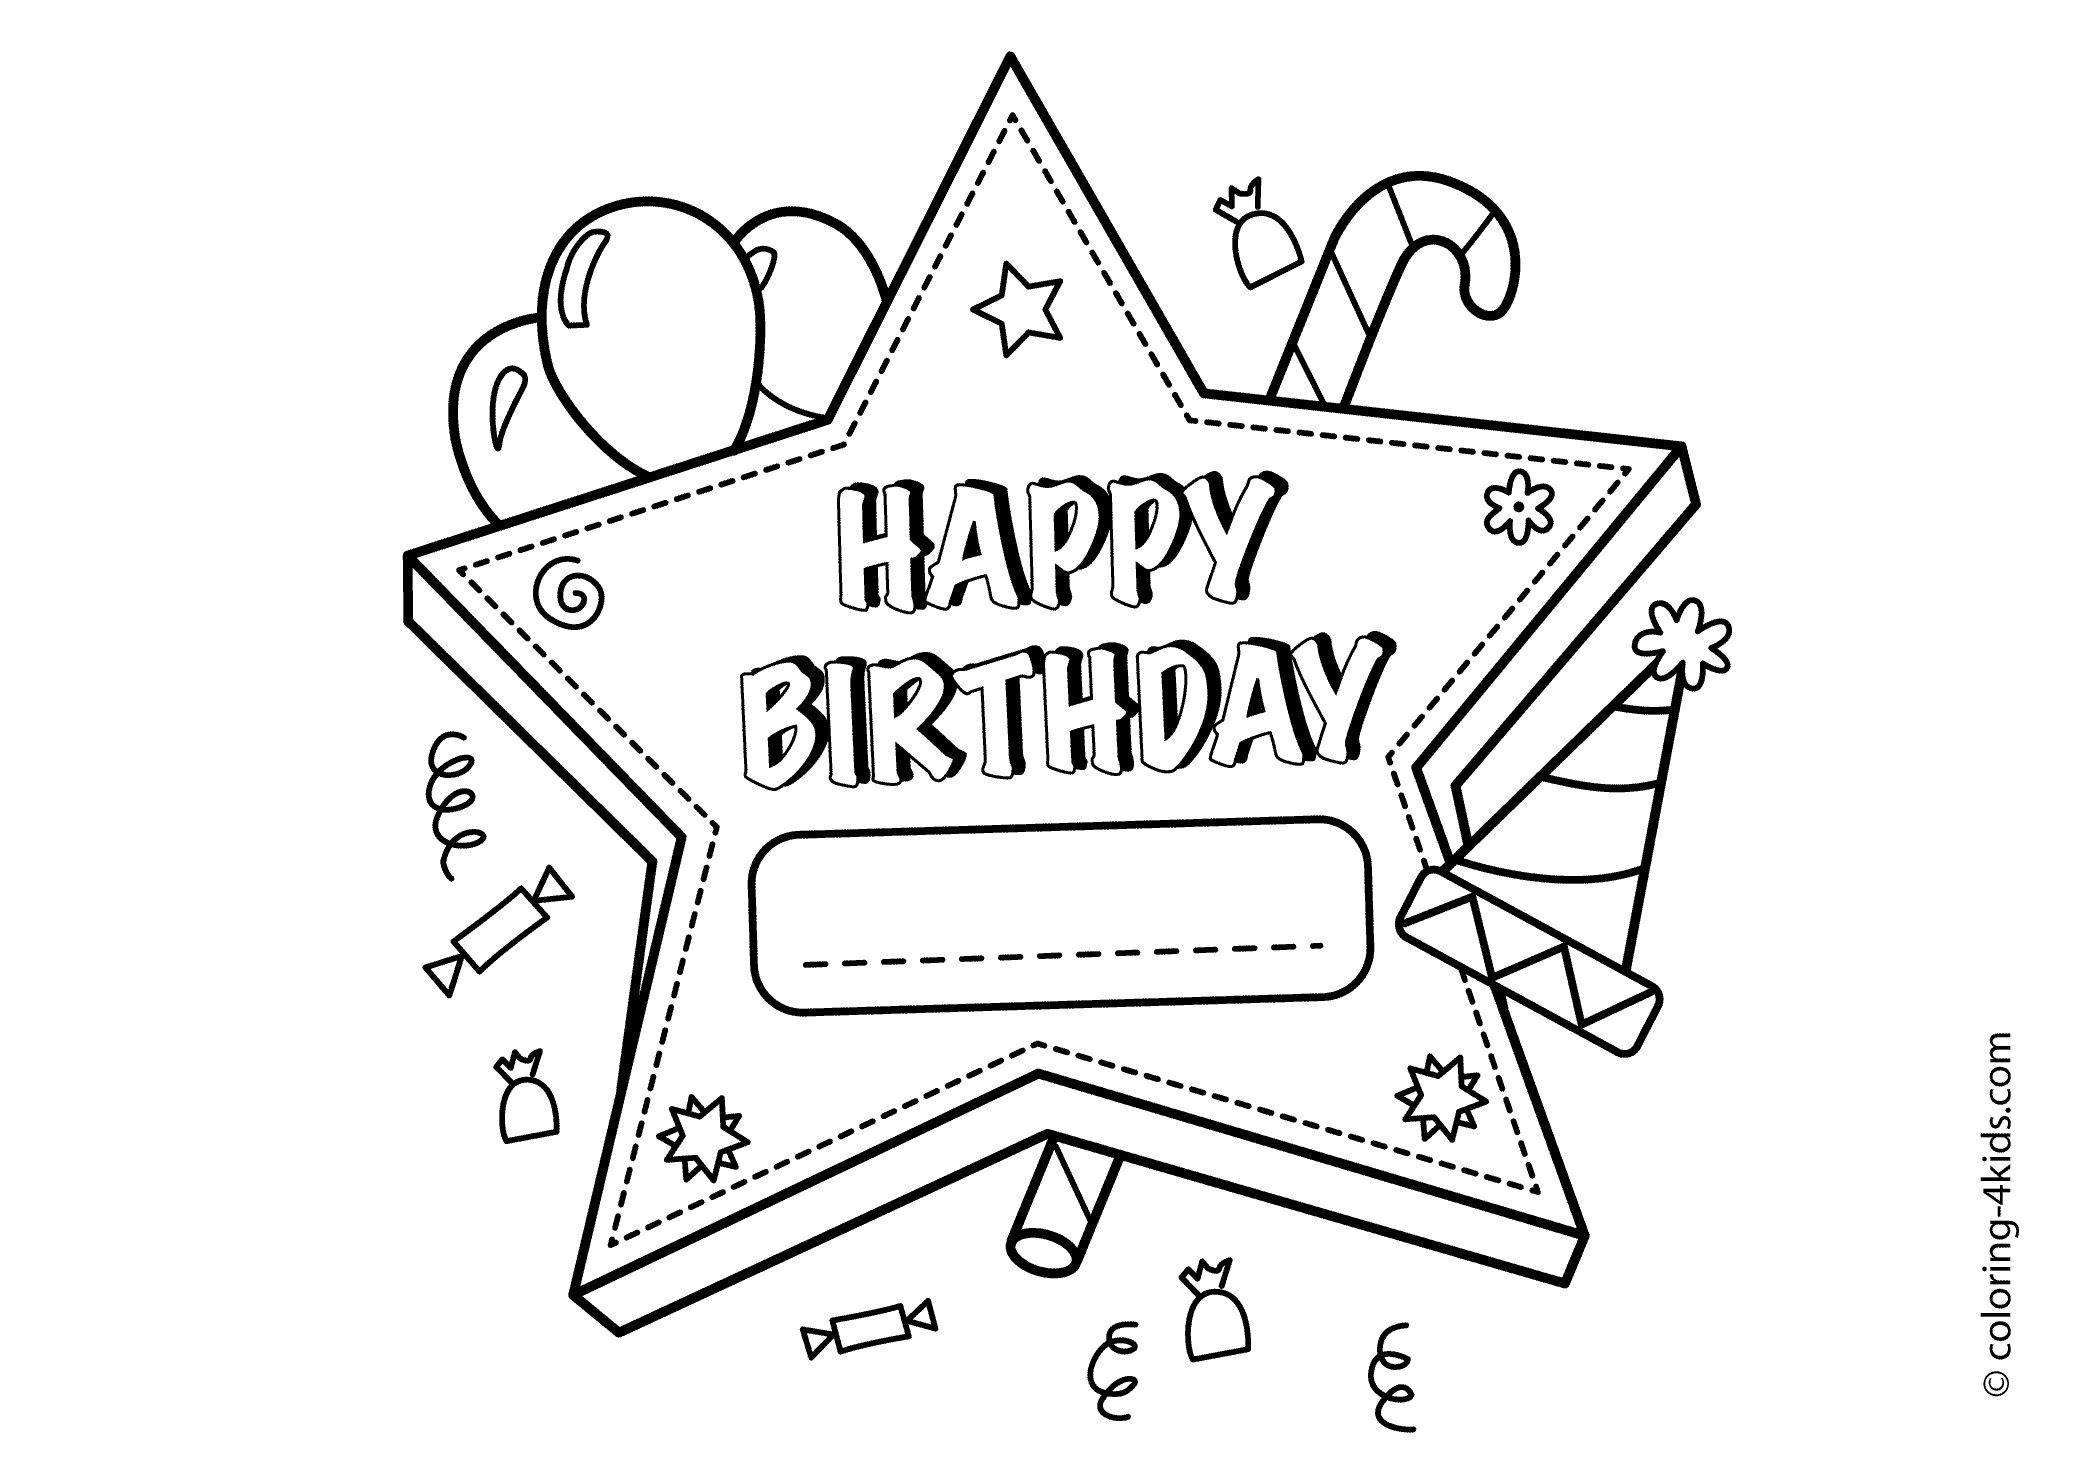 Printable Coloring Pages Happy Birthday Mom Gallery Of Free Printable Happy Birthday Mom Cards Birthday Coloring Pages for Printable